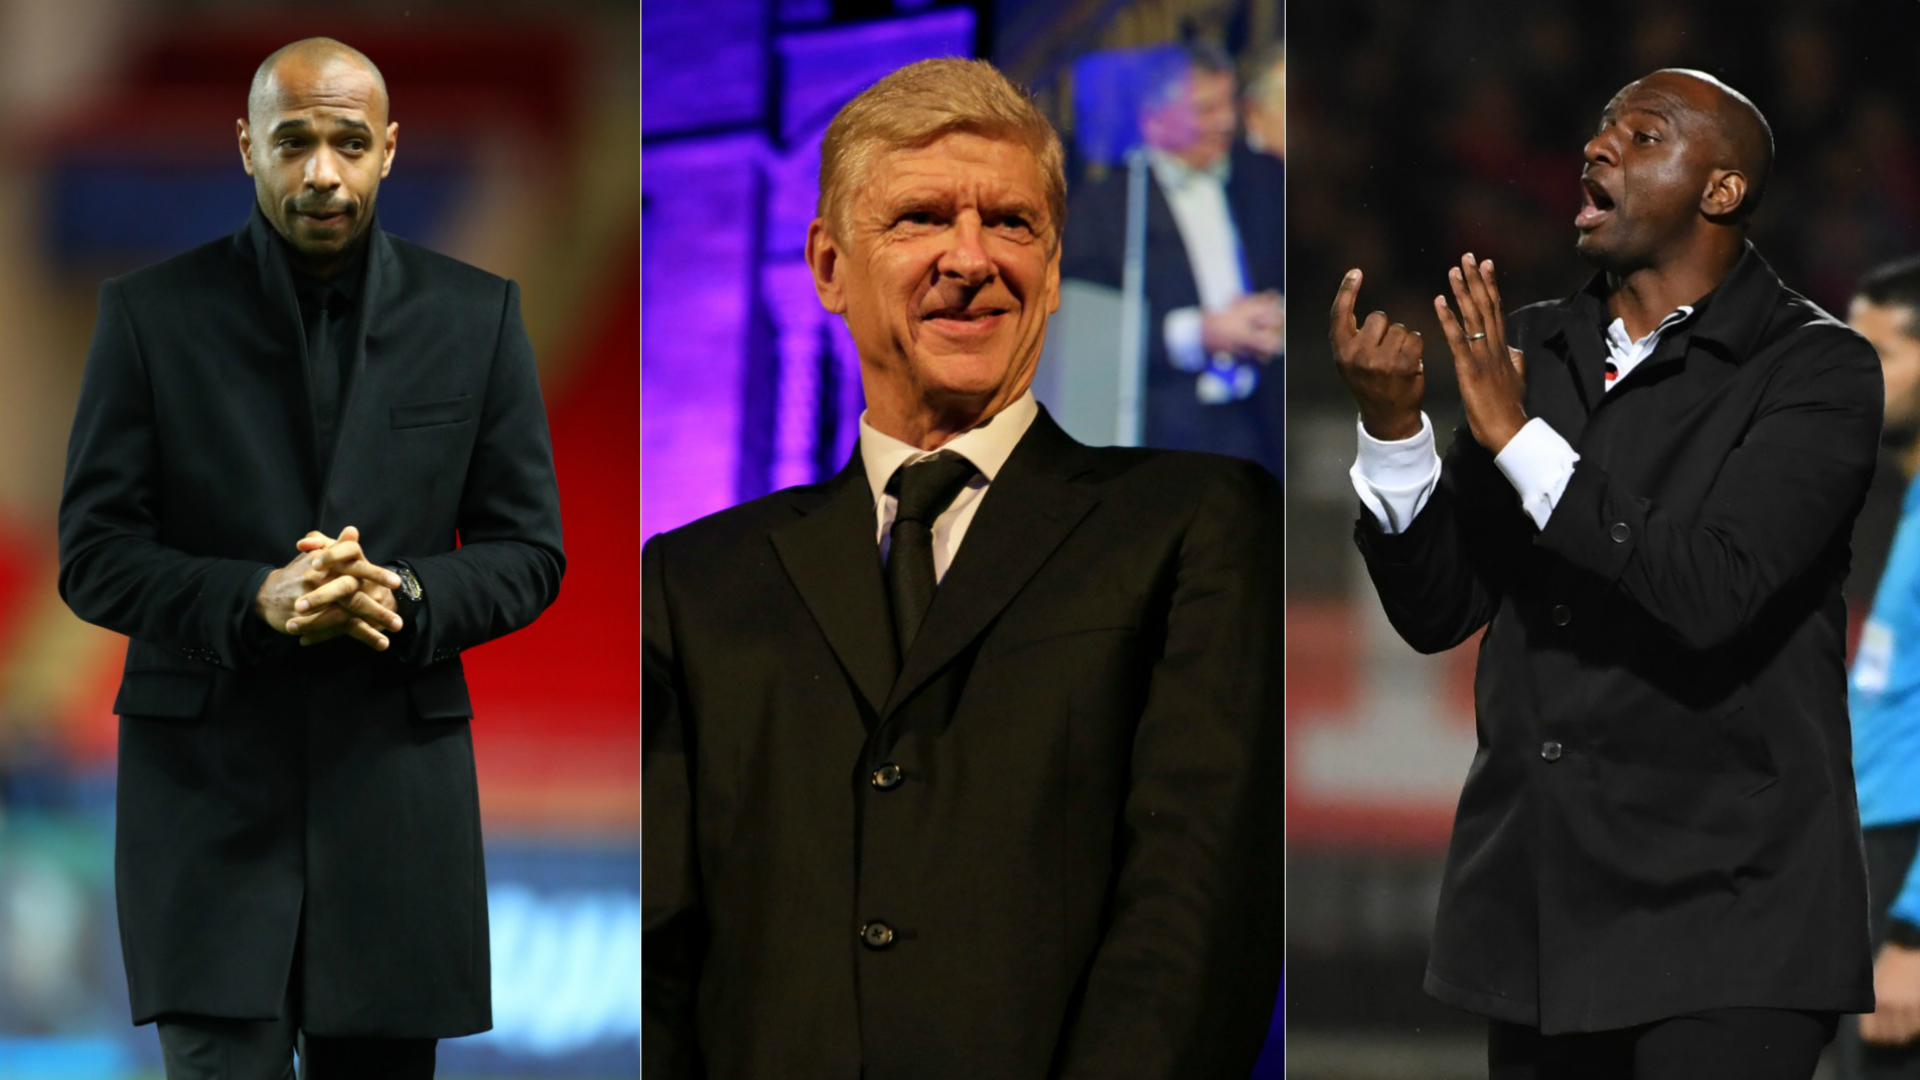 Henry, Vieira and Wenger's proteges